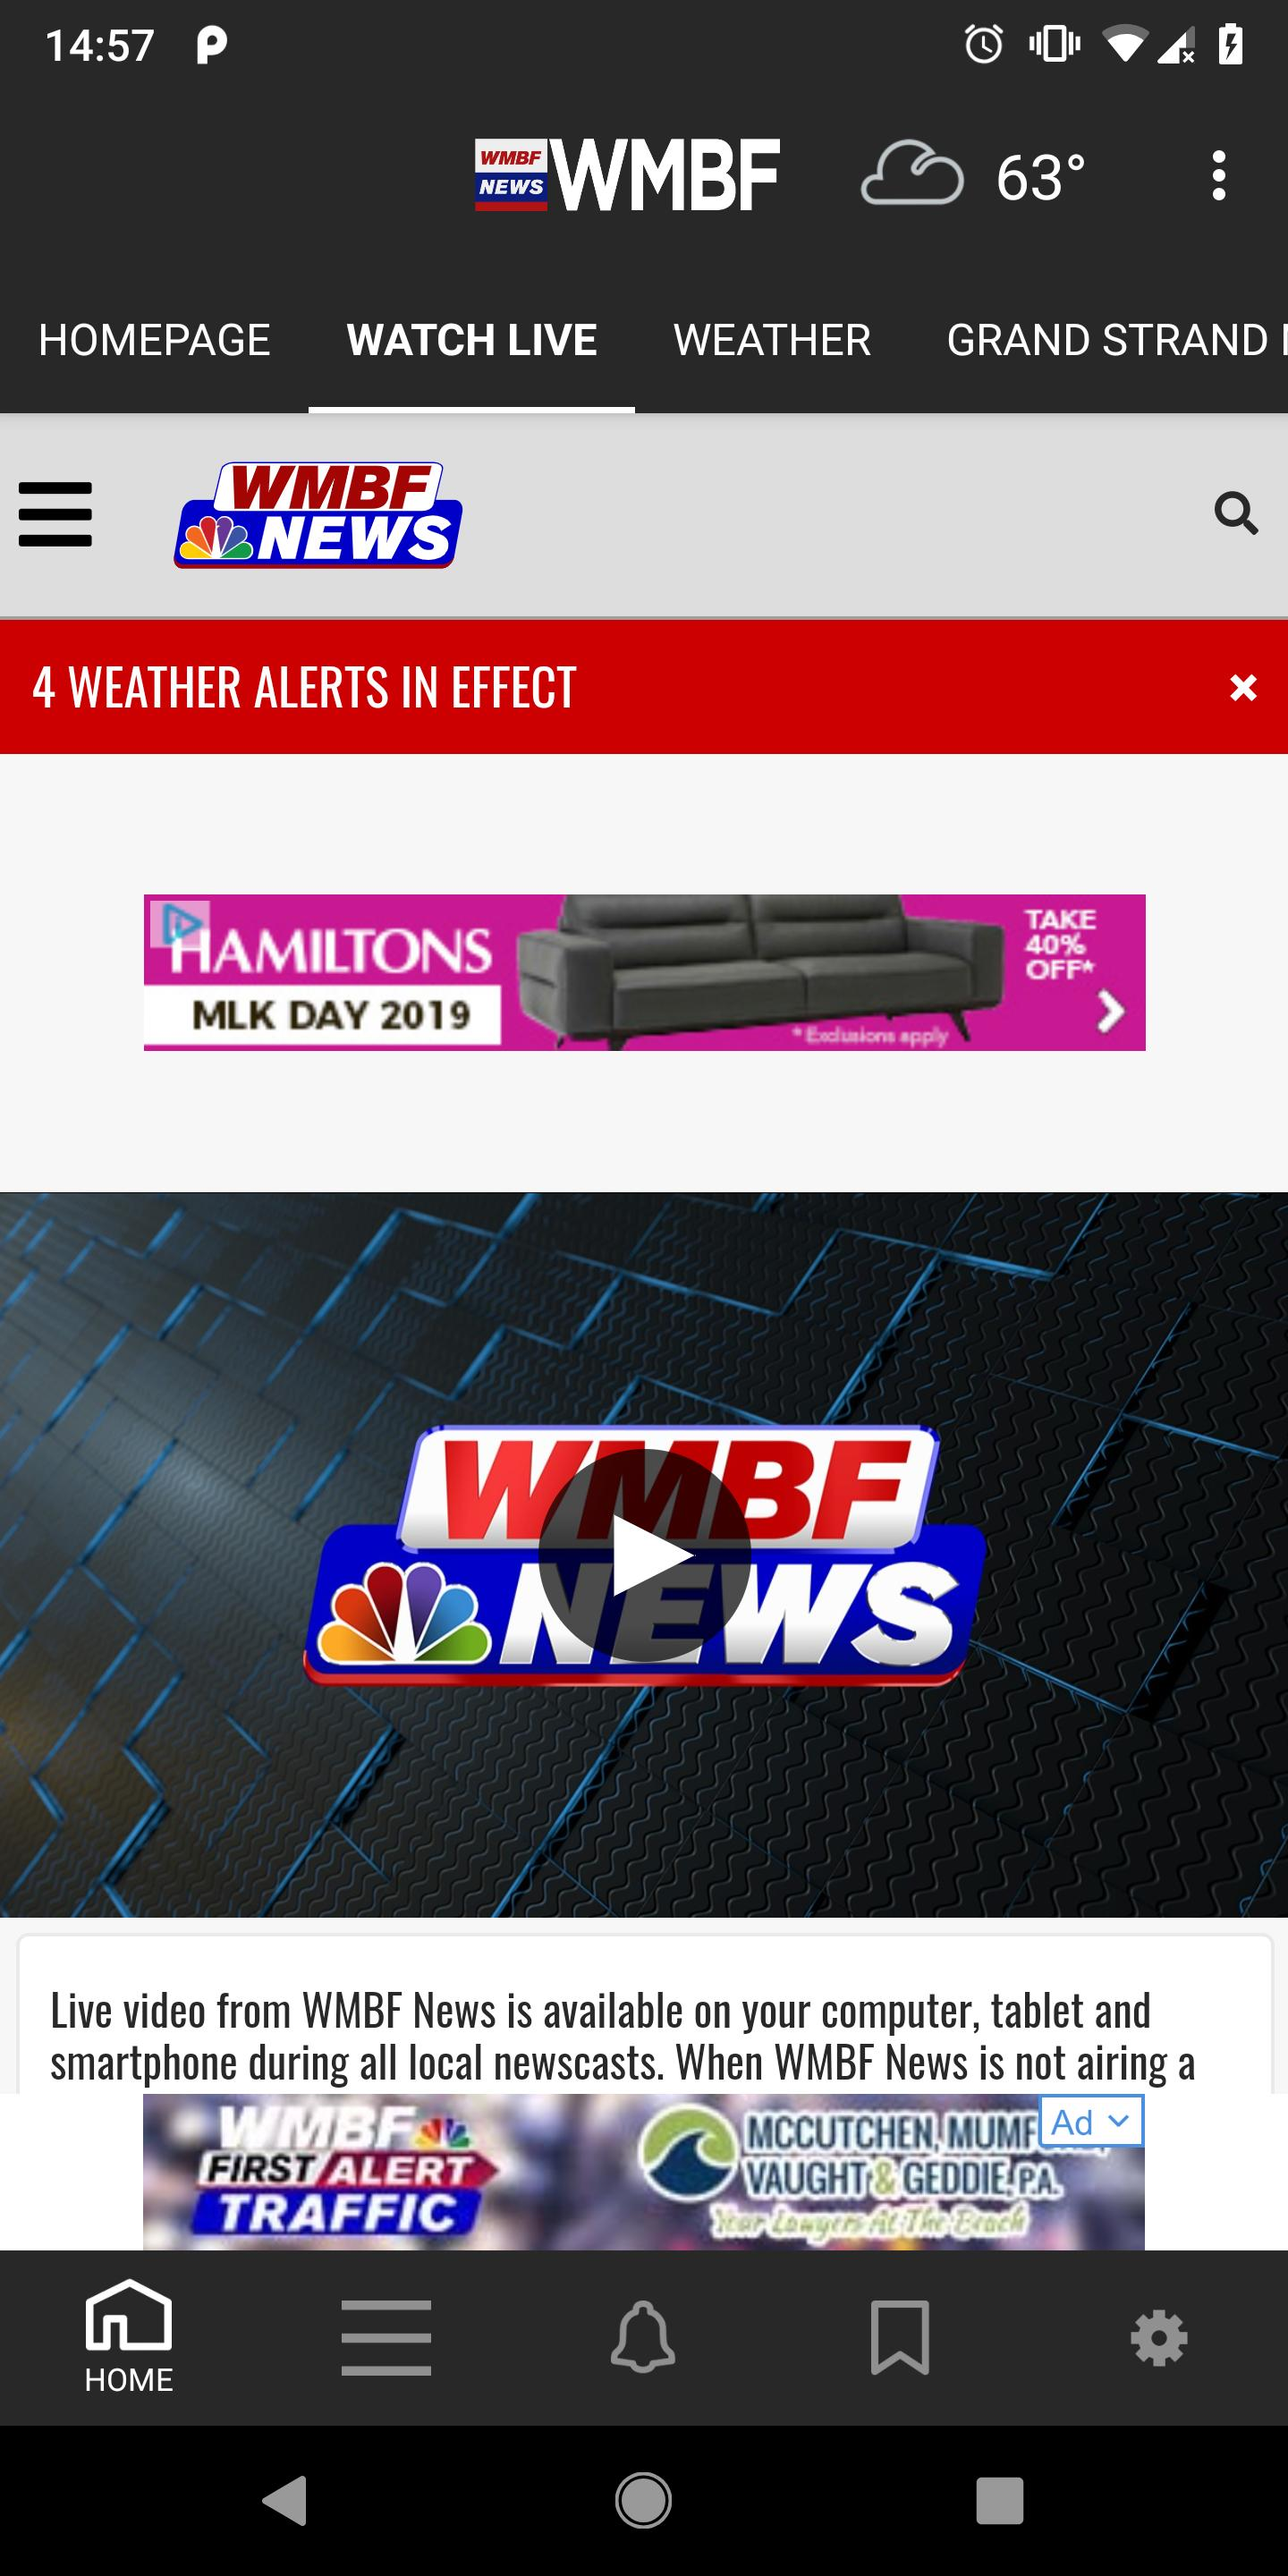 WMBF Breaking News & Weather for Android - APK Download